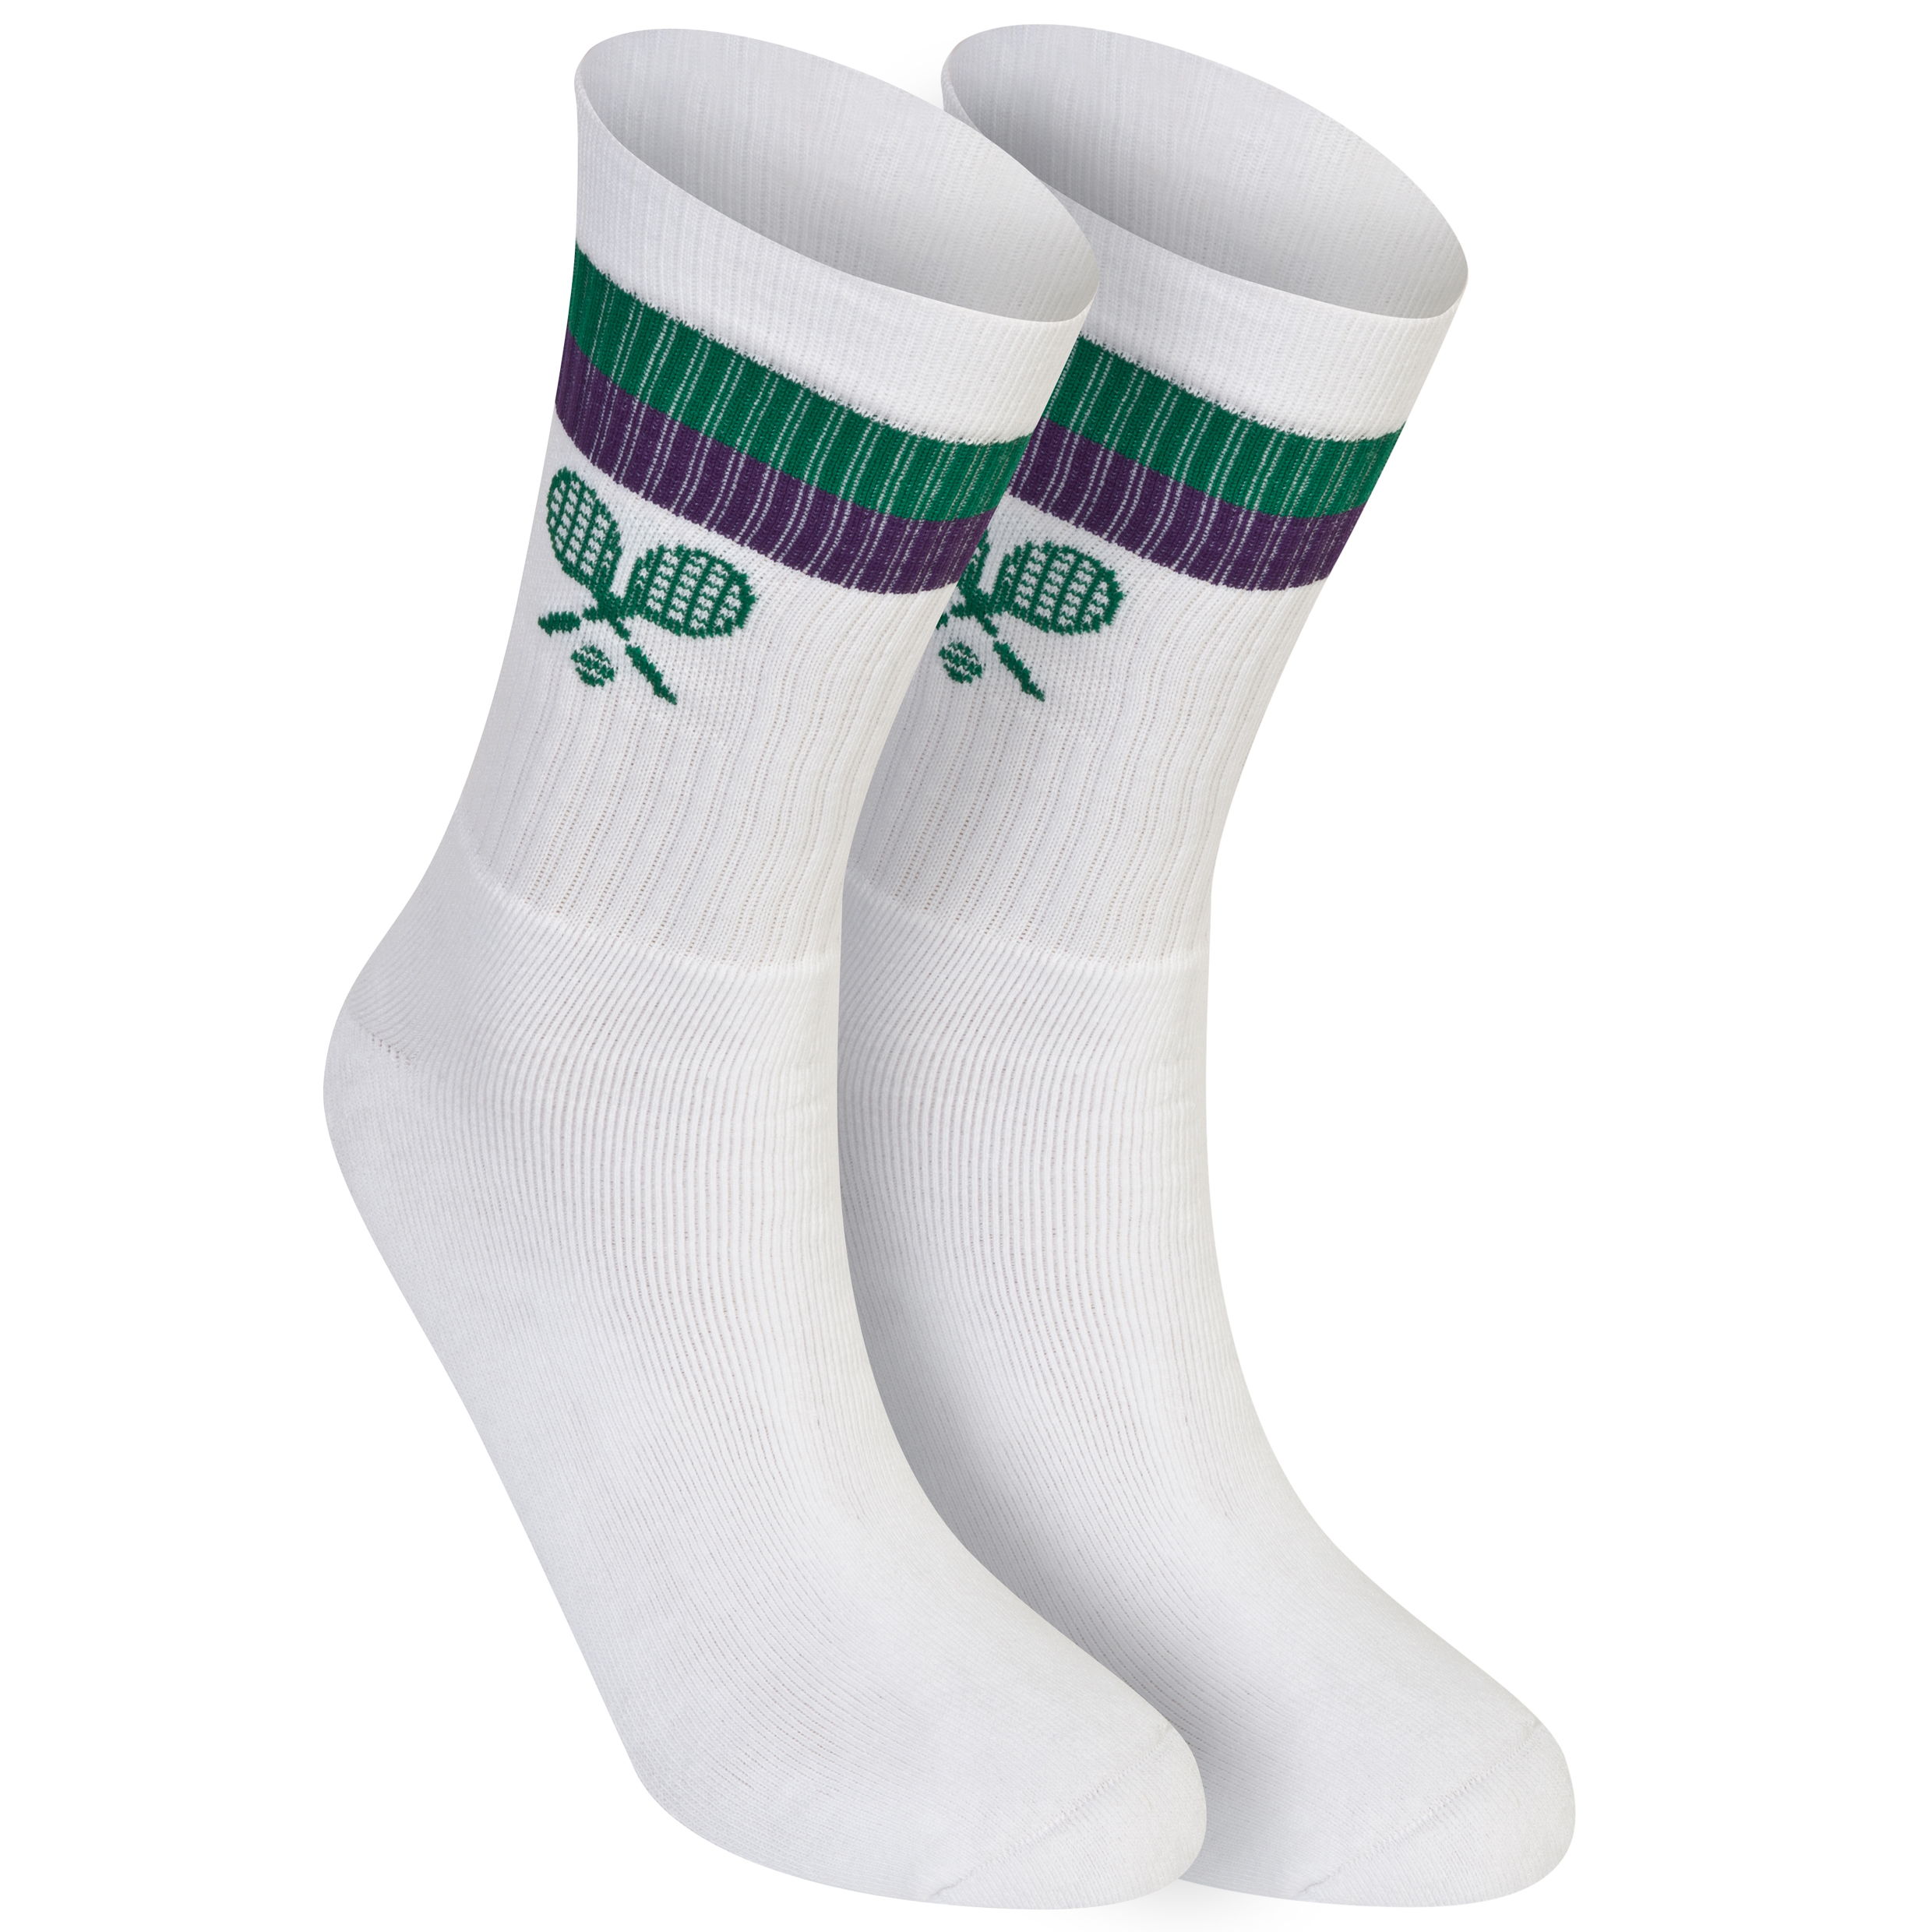 Wimbledon Crossed Racket Sock - Adult - White